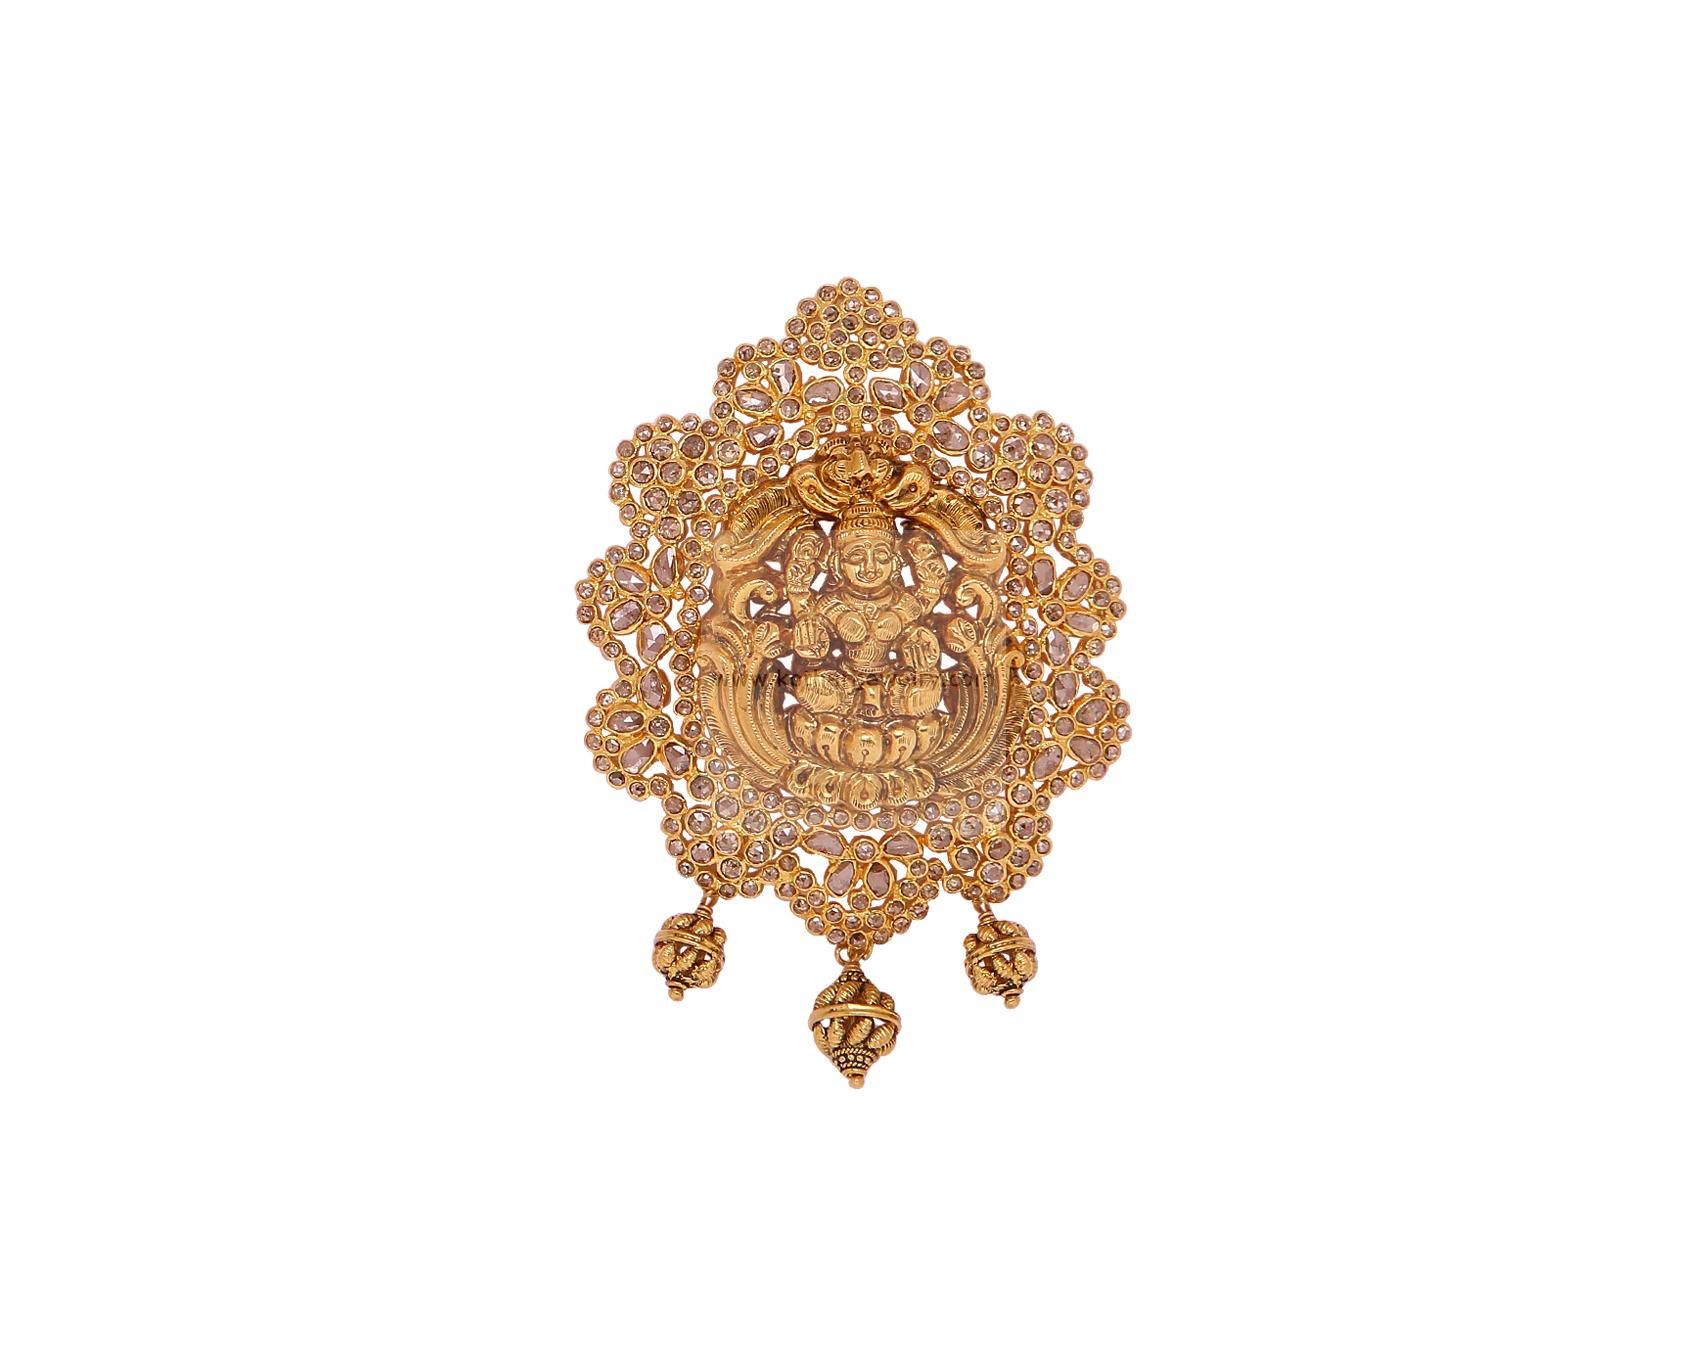 Pendant Sets / Tikka / Pendants - Gold Jewellery Pendant Sets ...